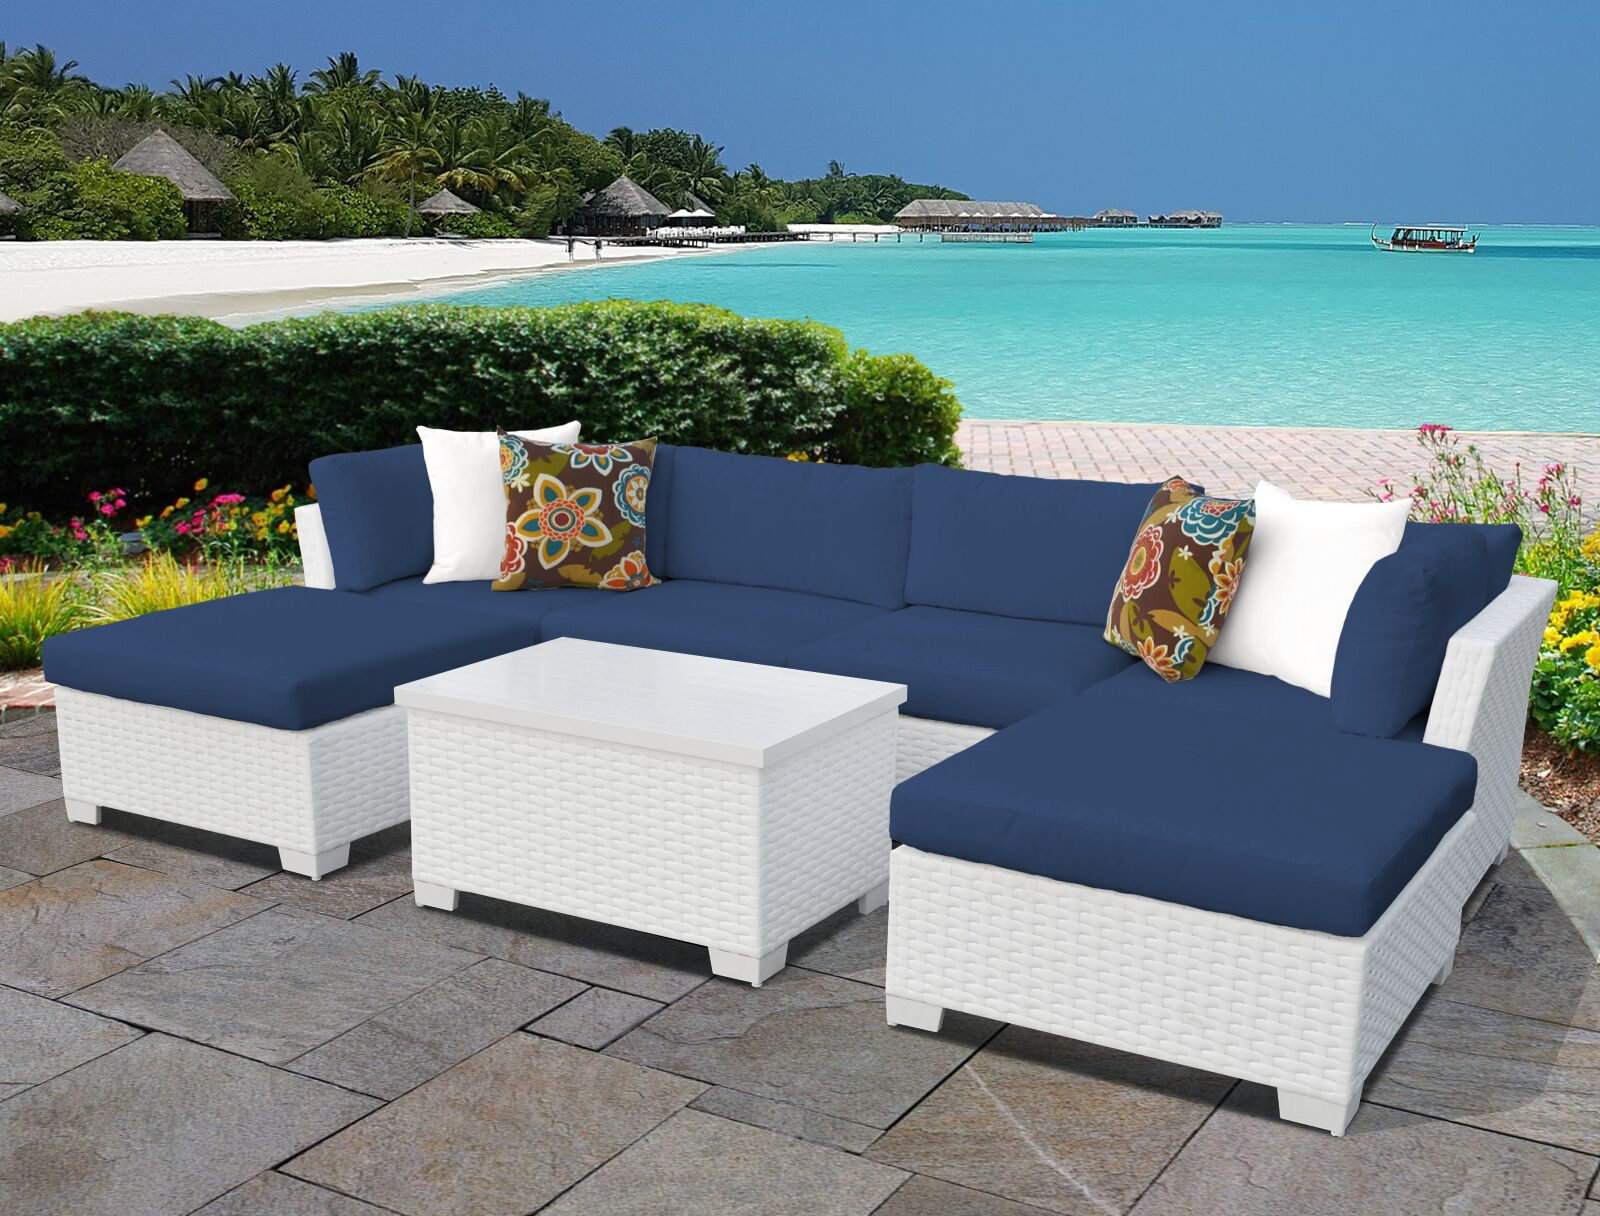 Monaco 7 Piece Sectional Set with Cushions Cushion Color (Fabric): Navy